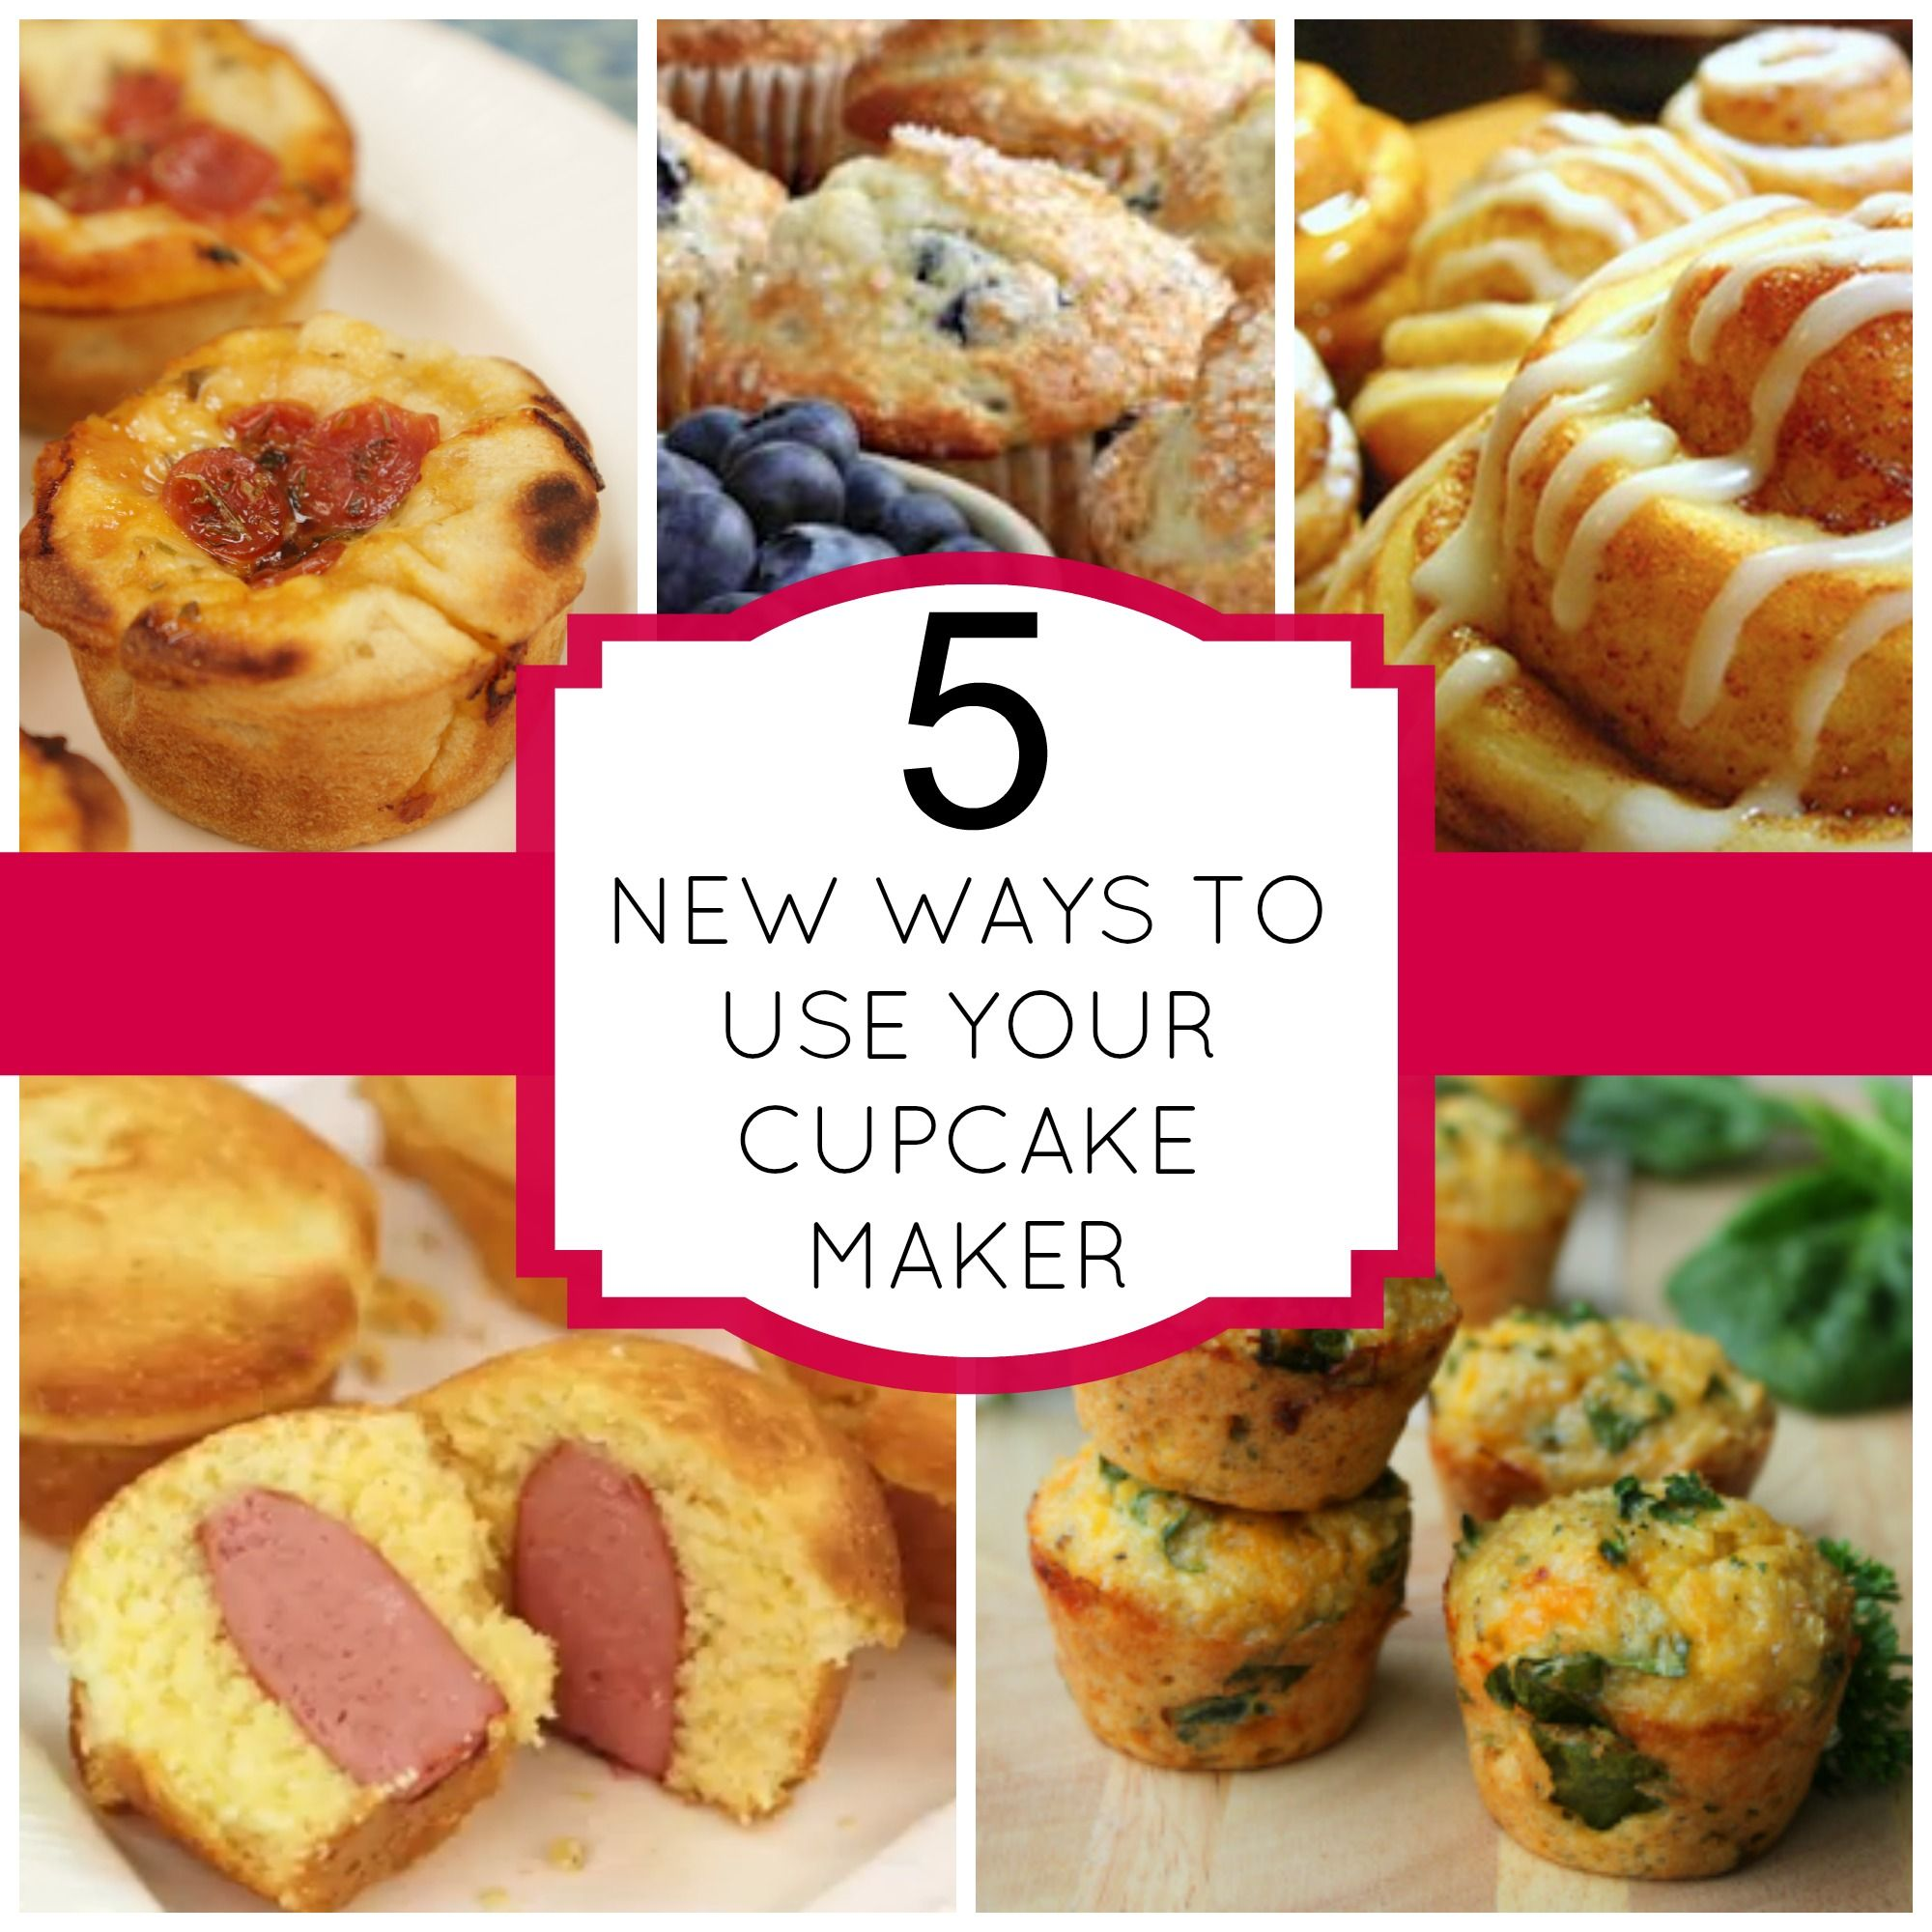 5 Ways To Use Your Cupcake Maker | Cupcake Obsessed Recipes